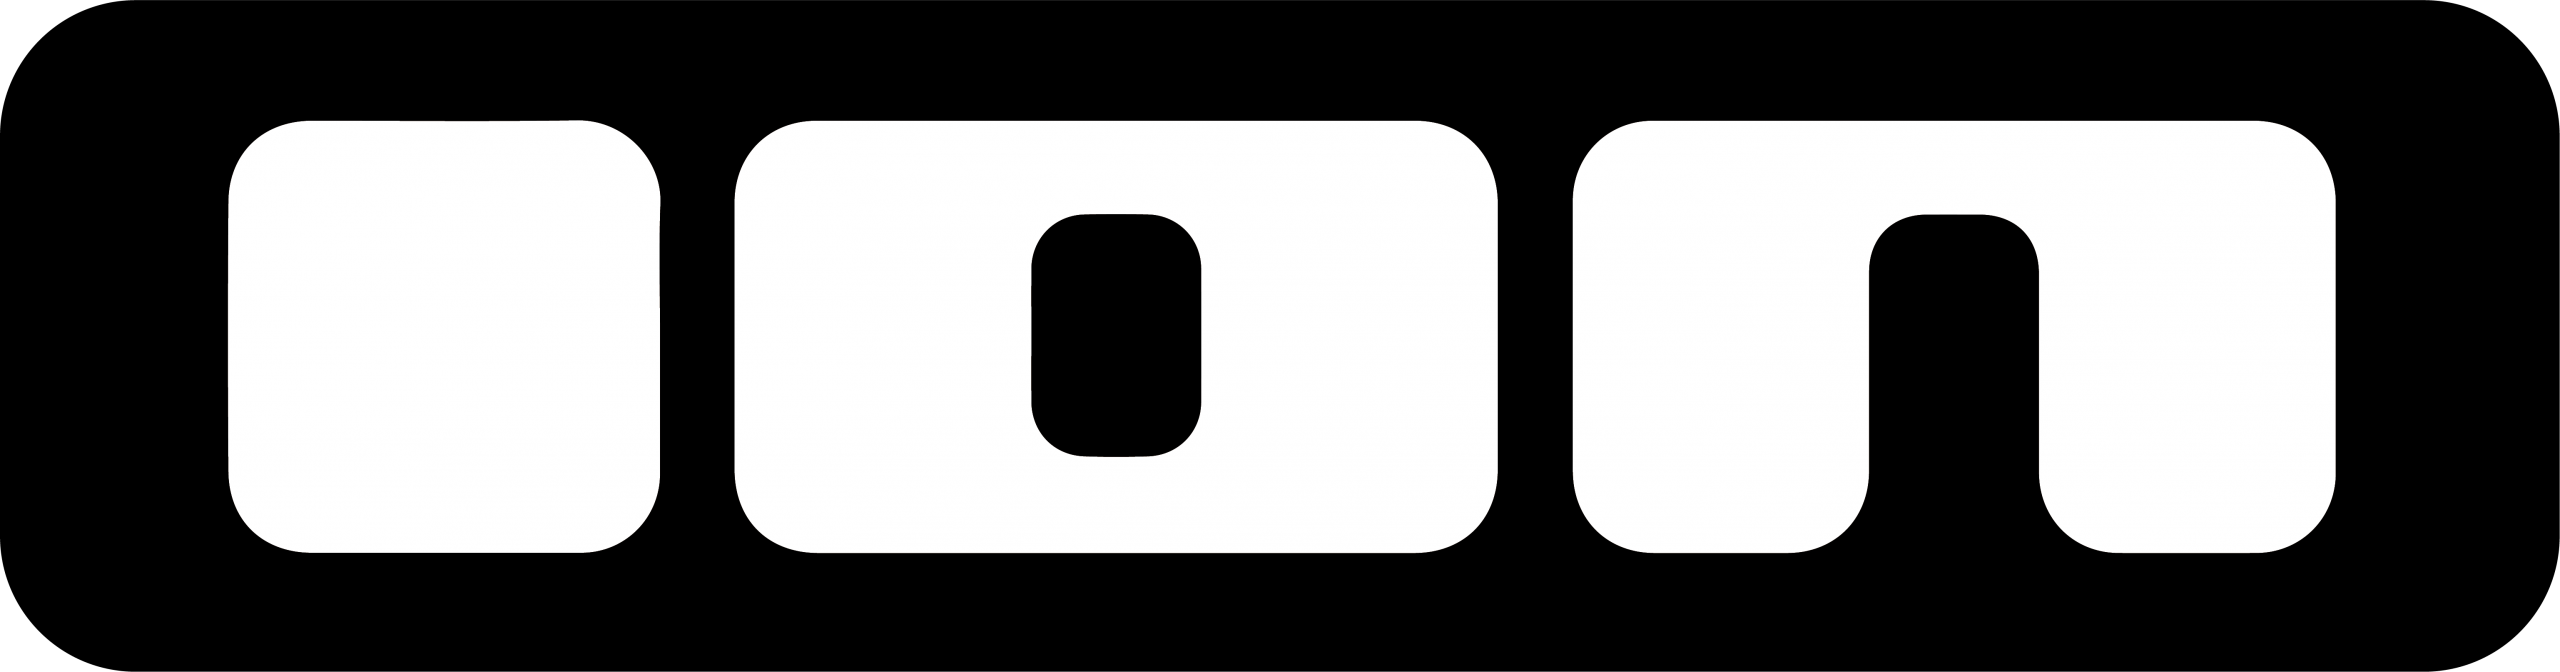 logo-ion-nero-02